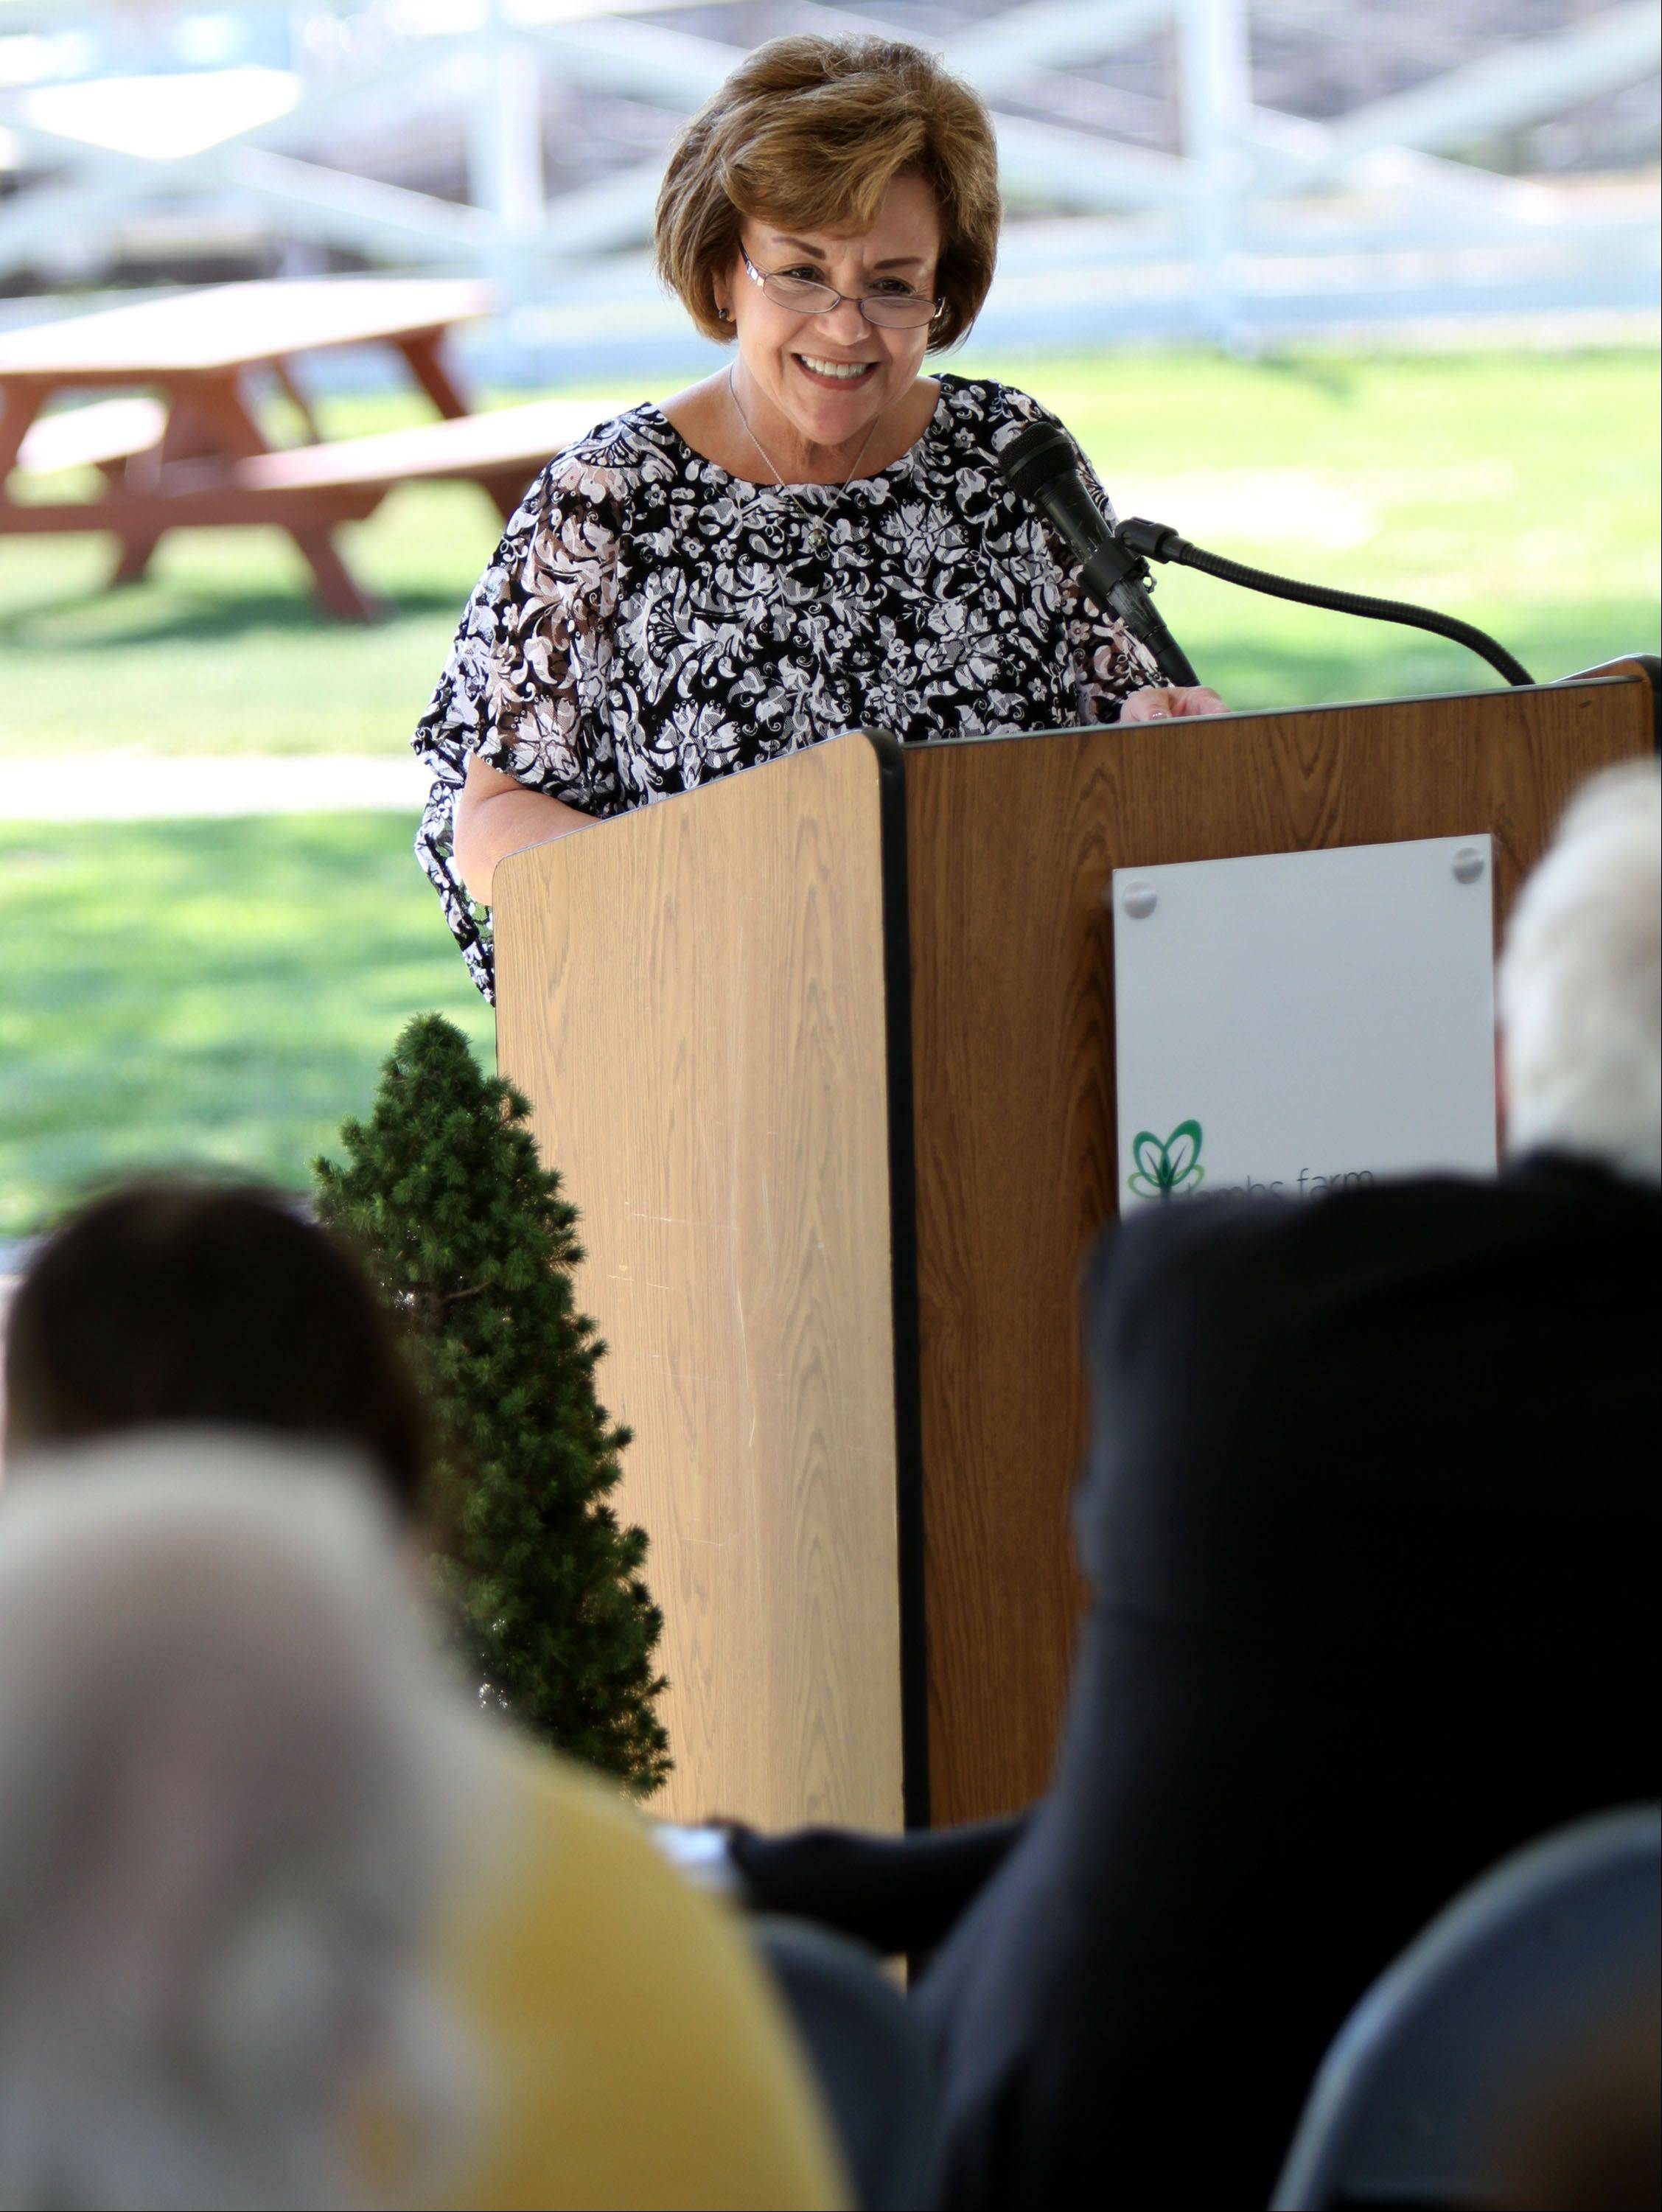 Dianne Yaconetti, president of Lambs Farm, speaks during a recent groundbreaking ceremony for a new Tribute Garden at the facility in Green Oaks.